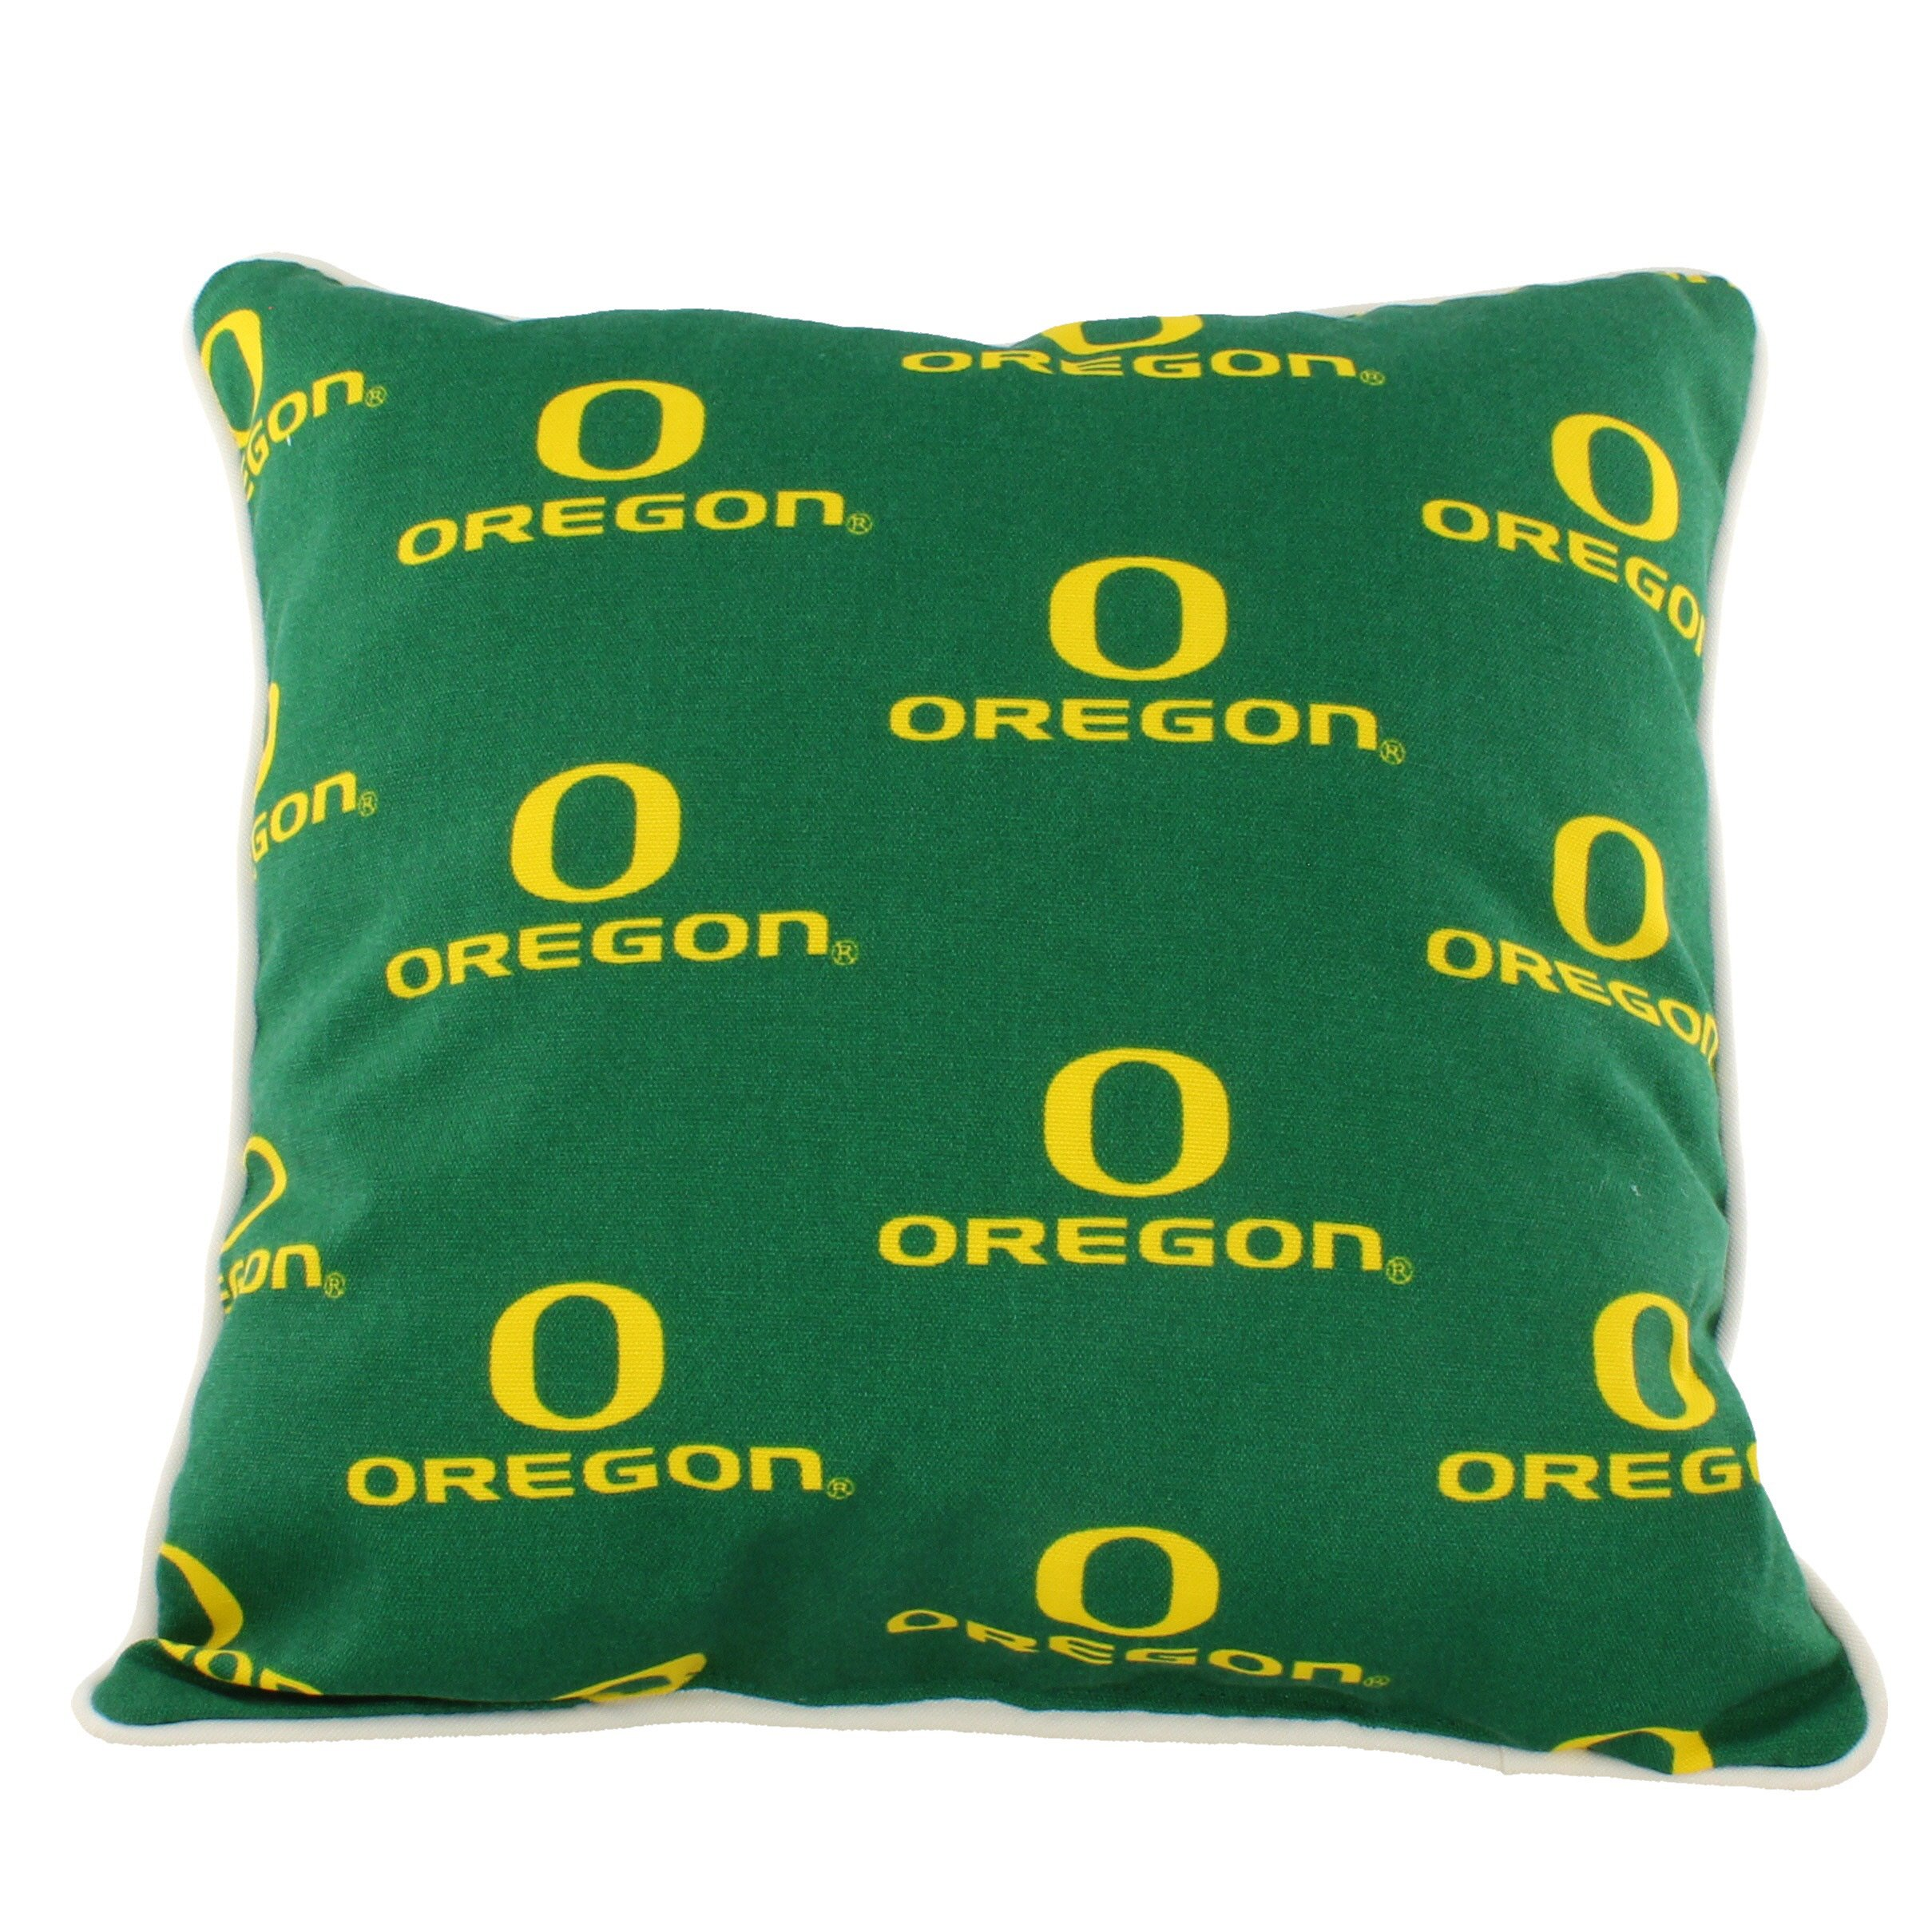 College Covers OREODP Oregon Ducks Outdoor Decorative Pillow, 16'' x 16'', Green by College Covers (Image #1)